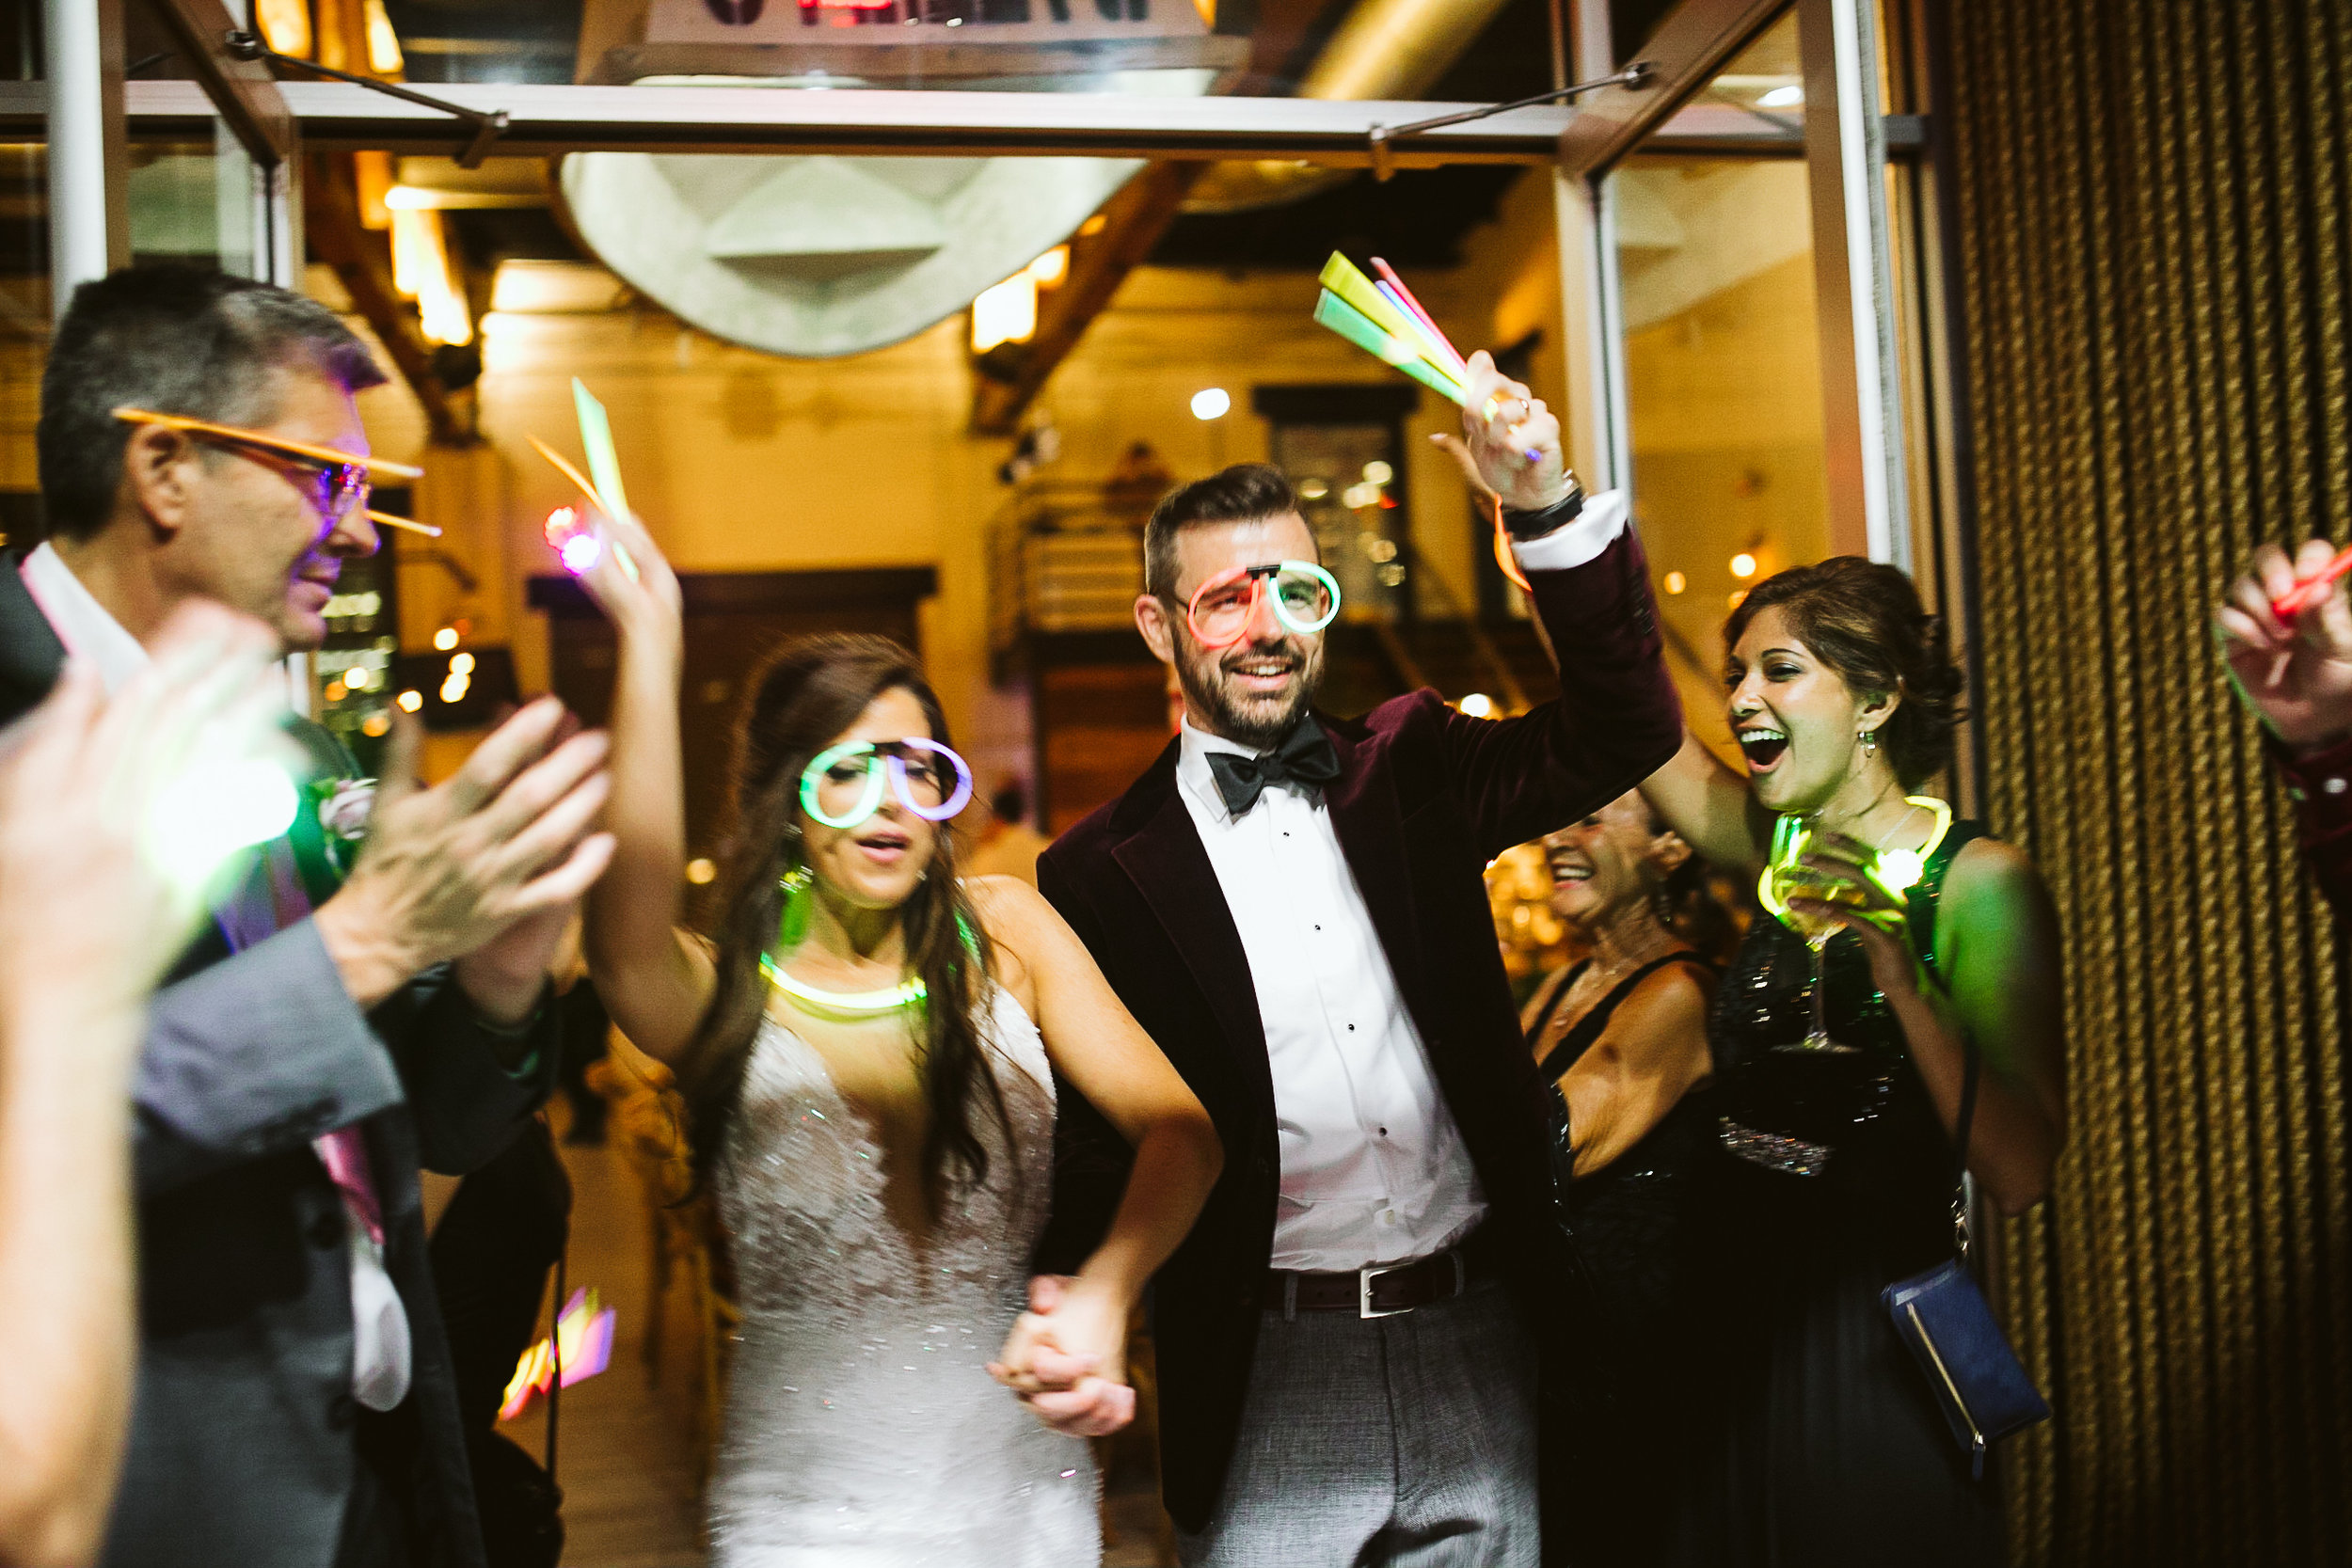 The bride and groom send-off at this Battello Wedding in Jersey City, NJ